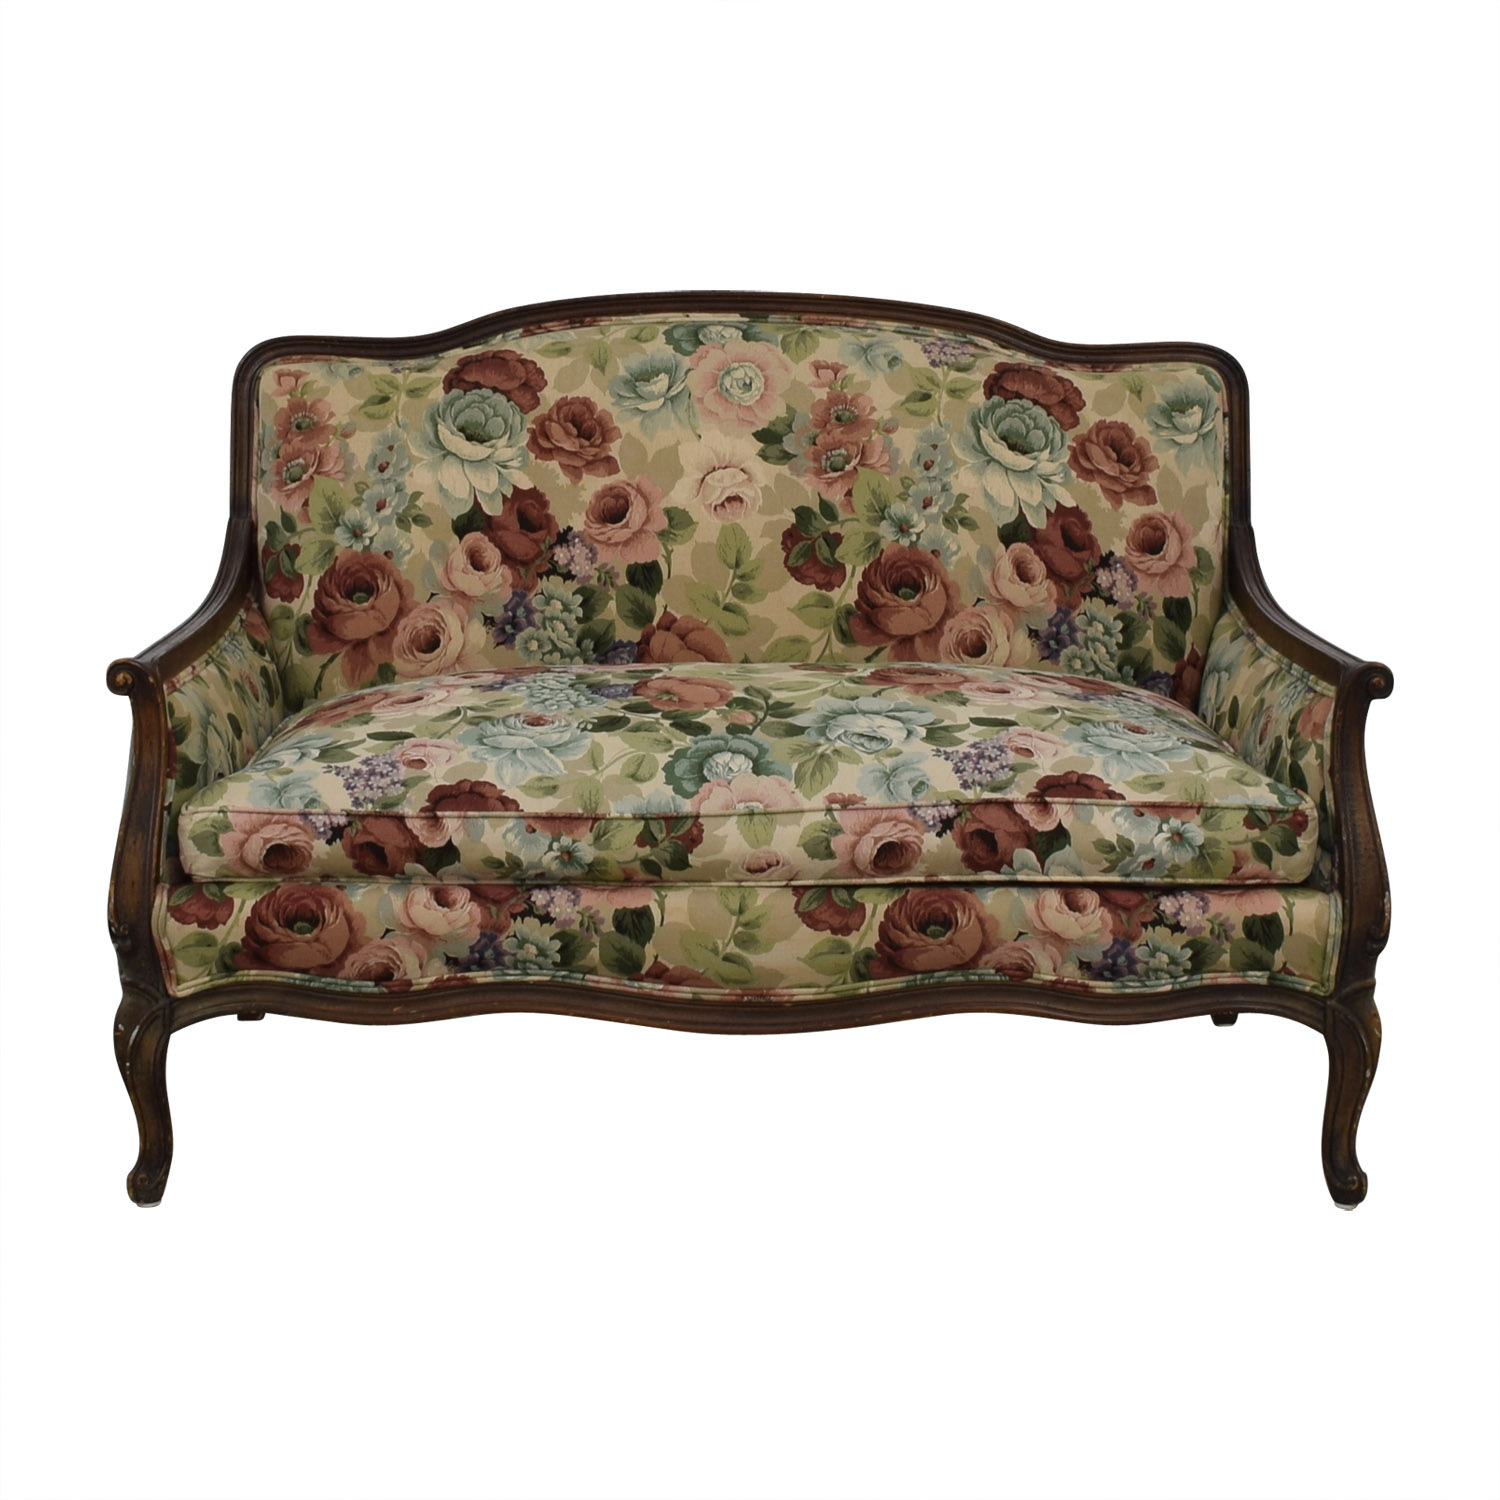 Antique Floral Upholstered Single Cushion Loveseat nj